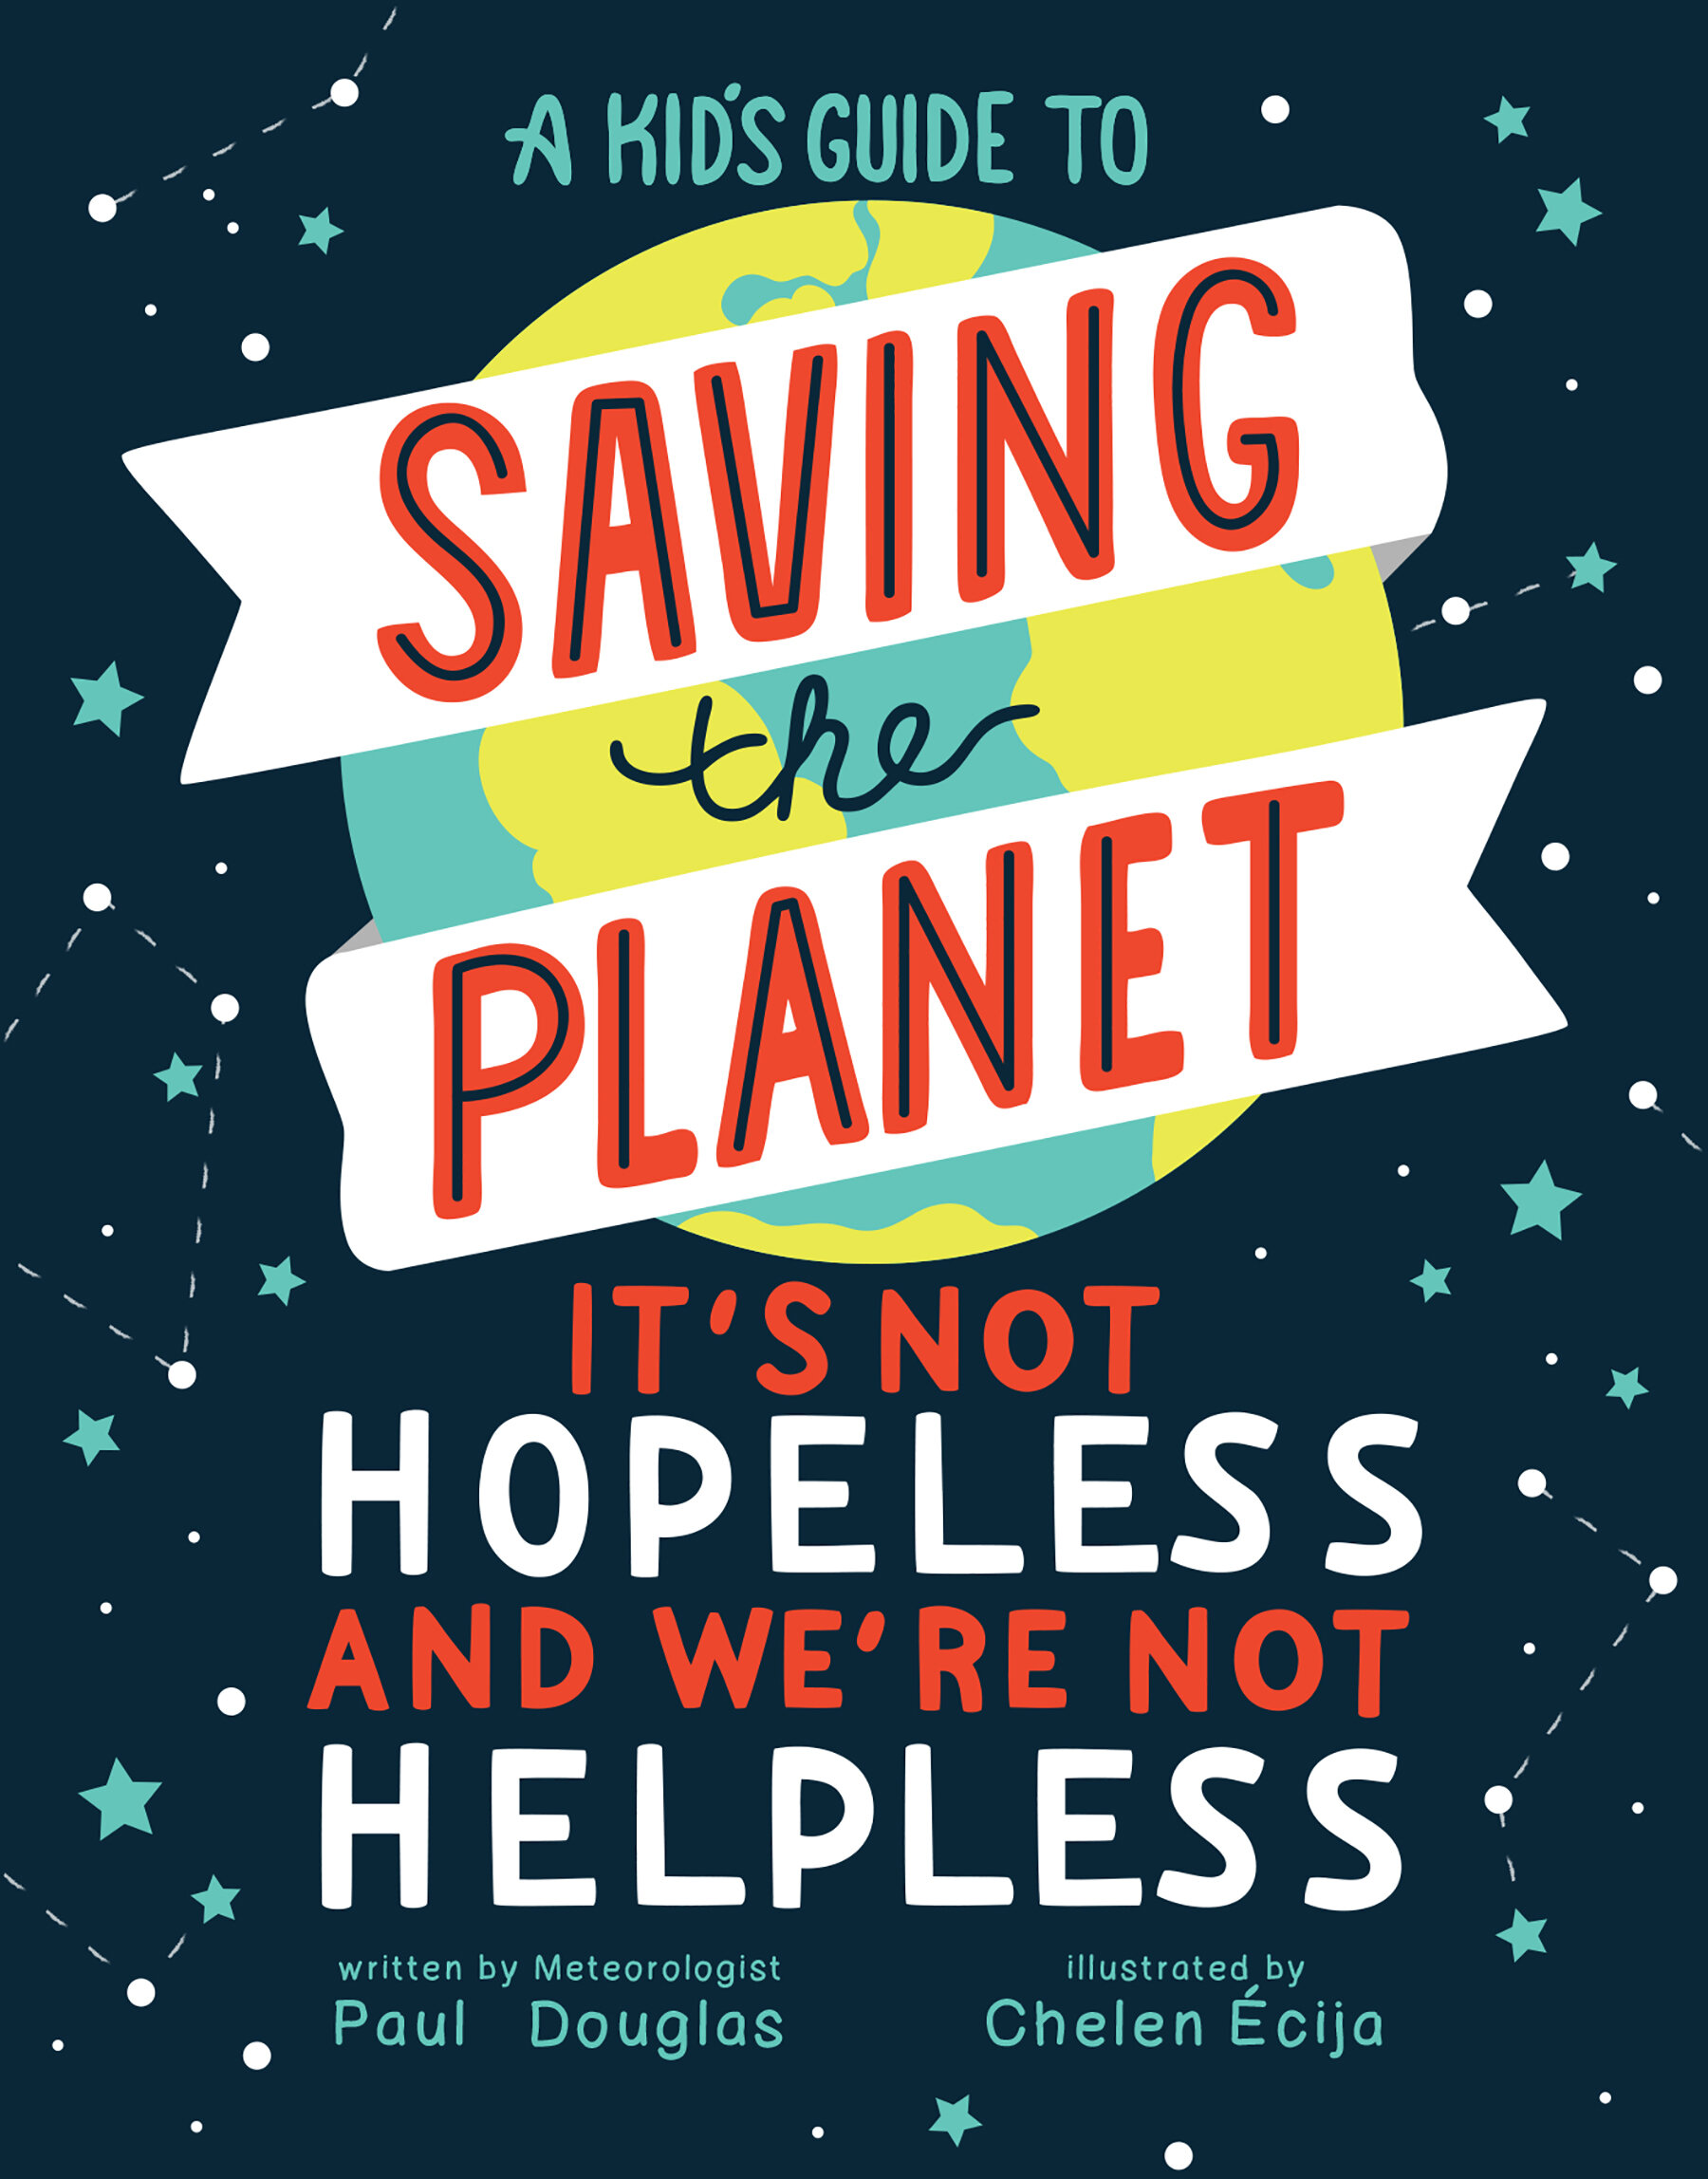 A Kid's Guide to Saving the Planet: It's Not Hopeless and We're Not Helpless